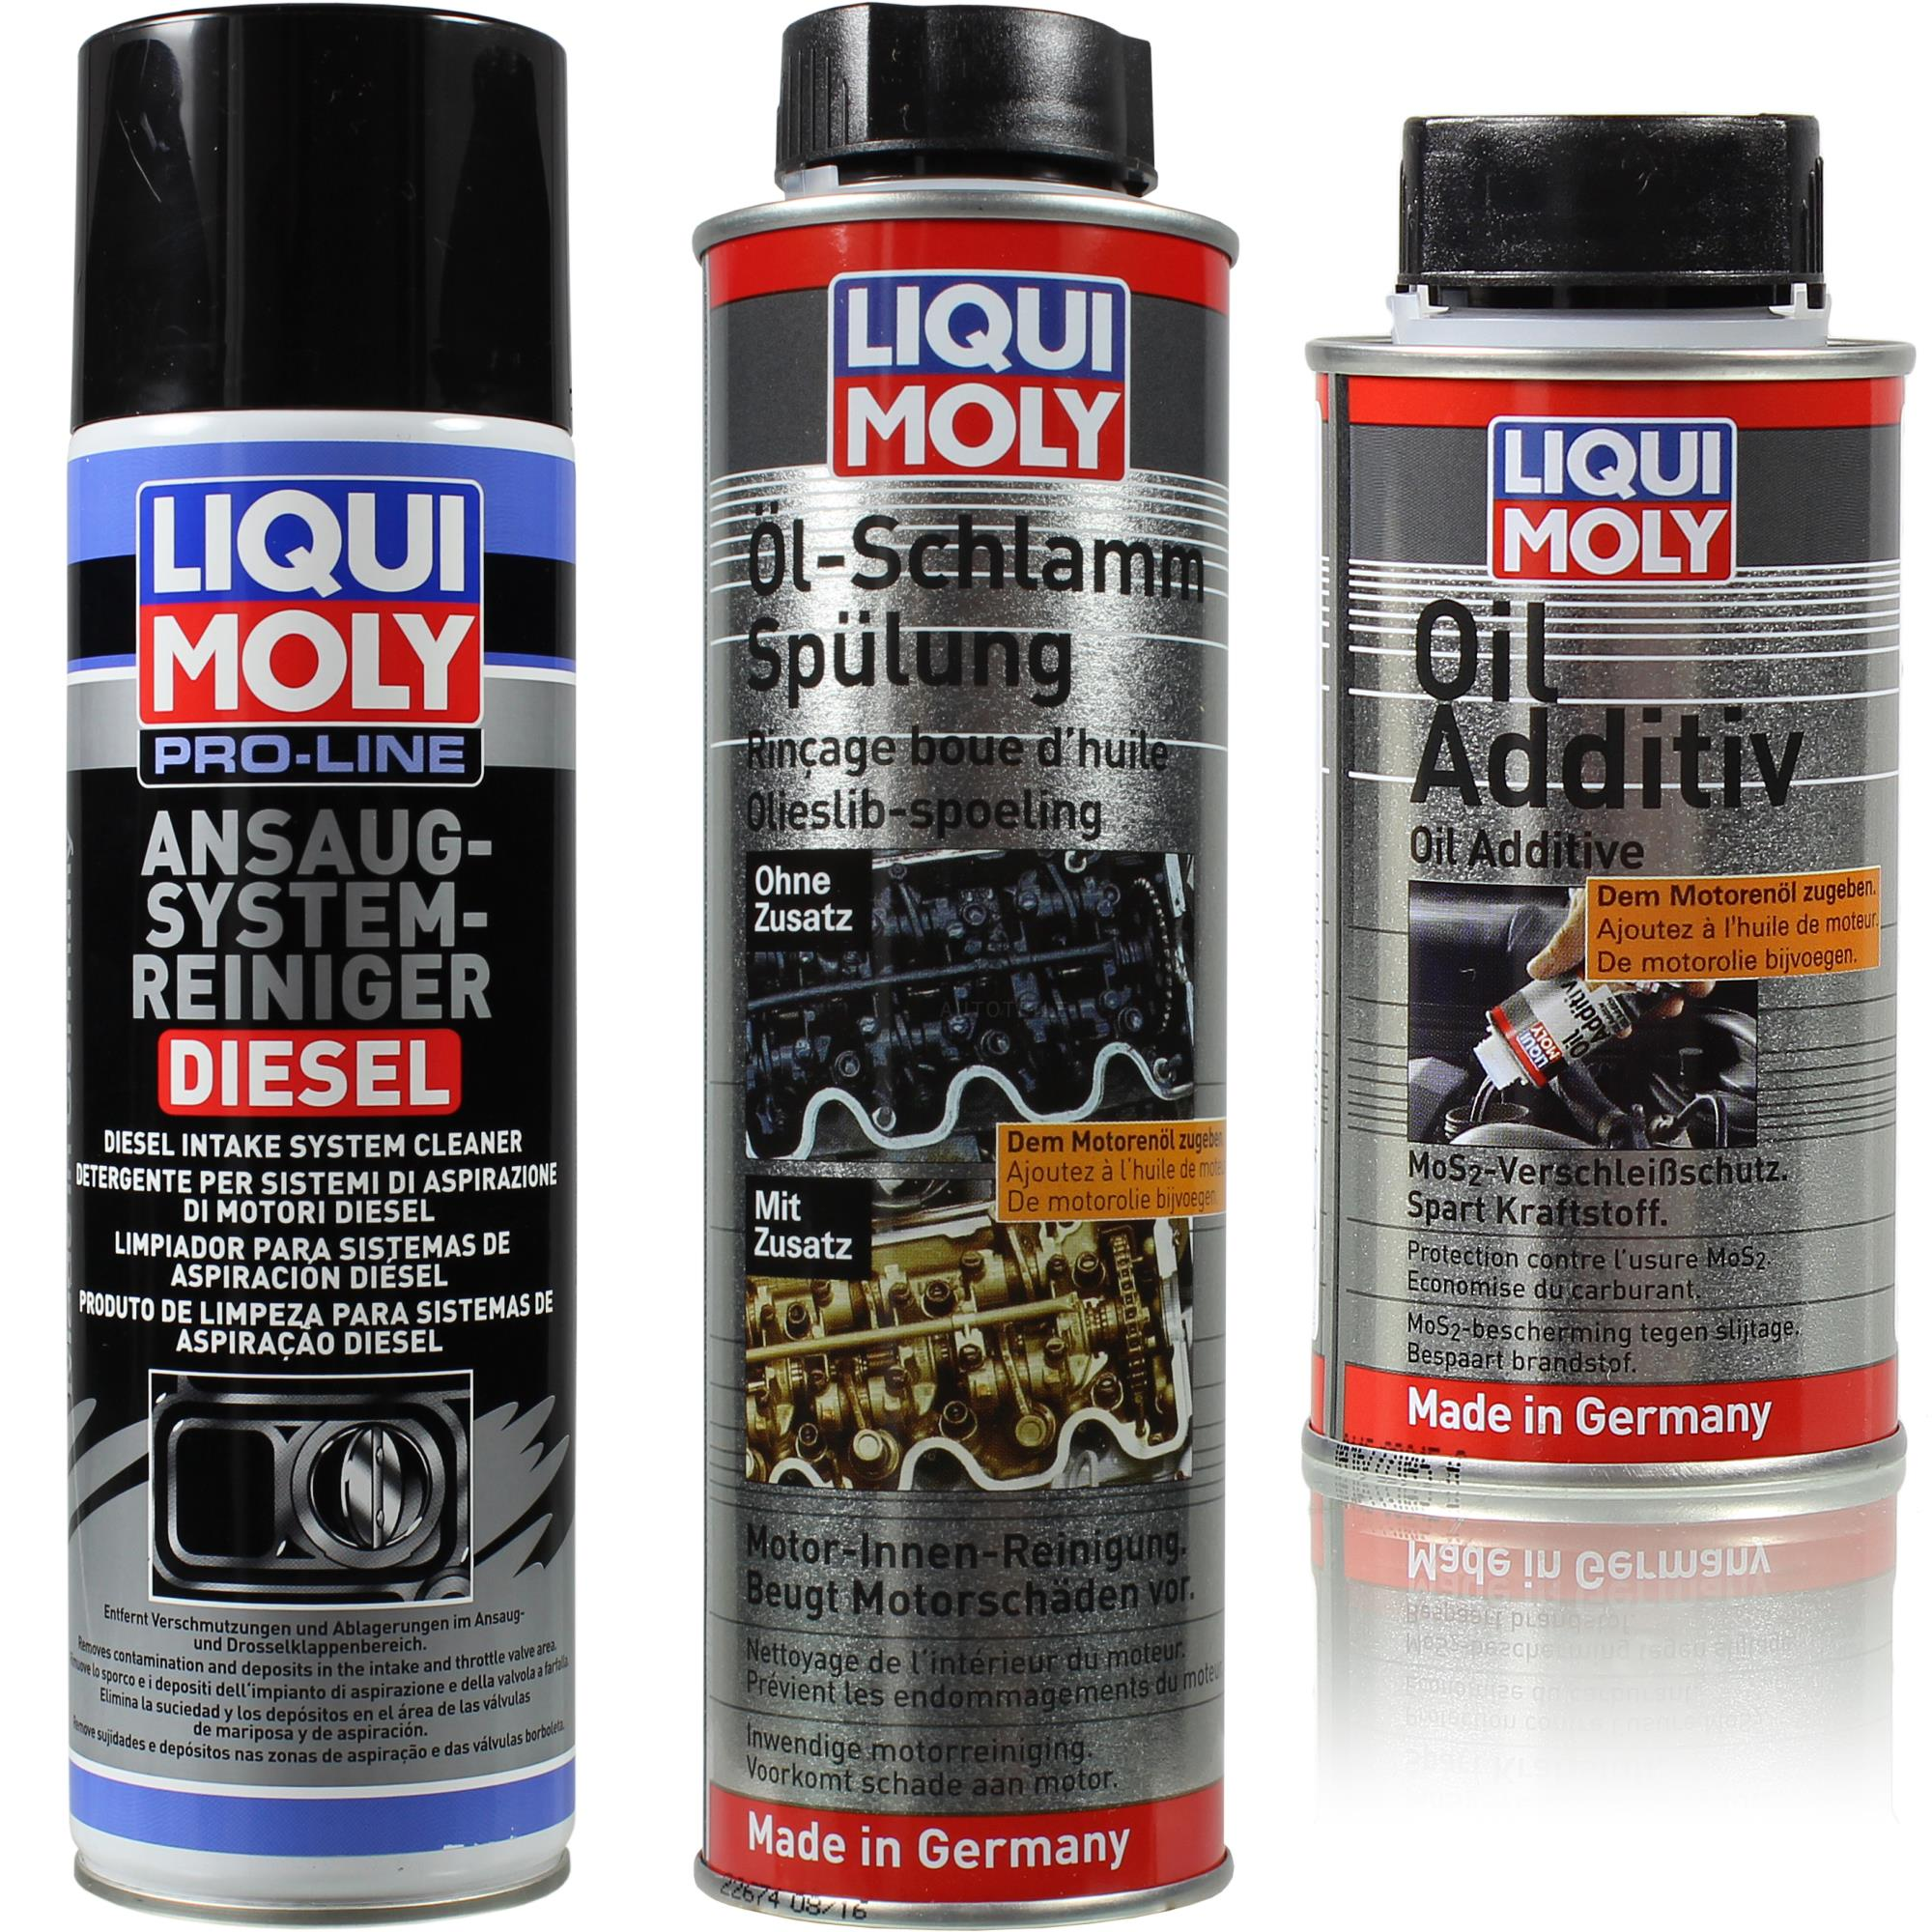 liqui moly pro line ansaug system reiniger diesel l. Black Bedroom Furniture Sets. Home Design Ideas